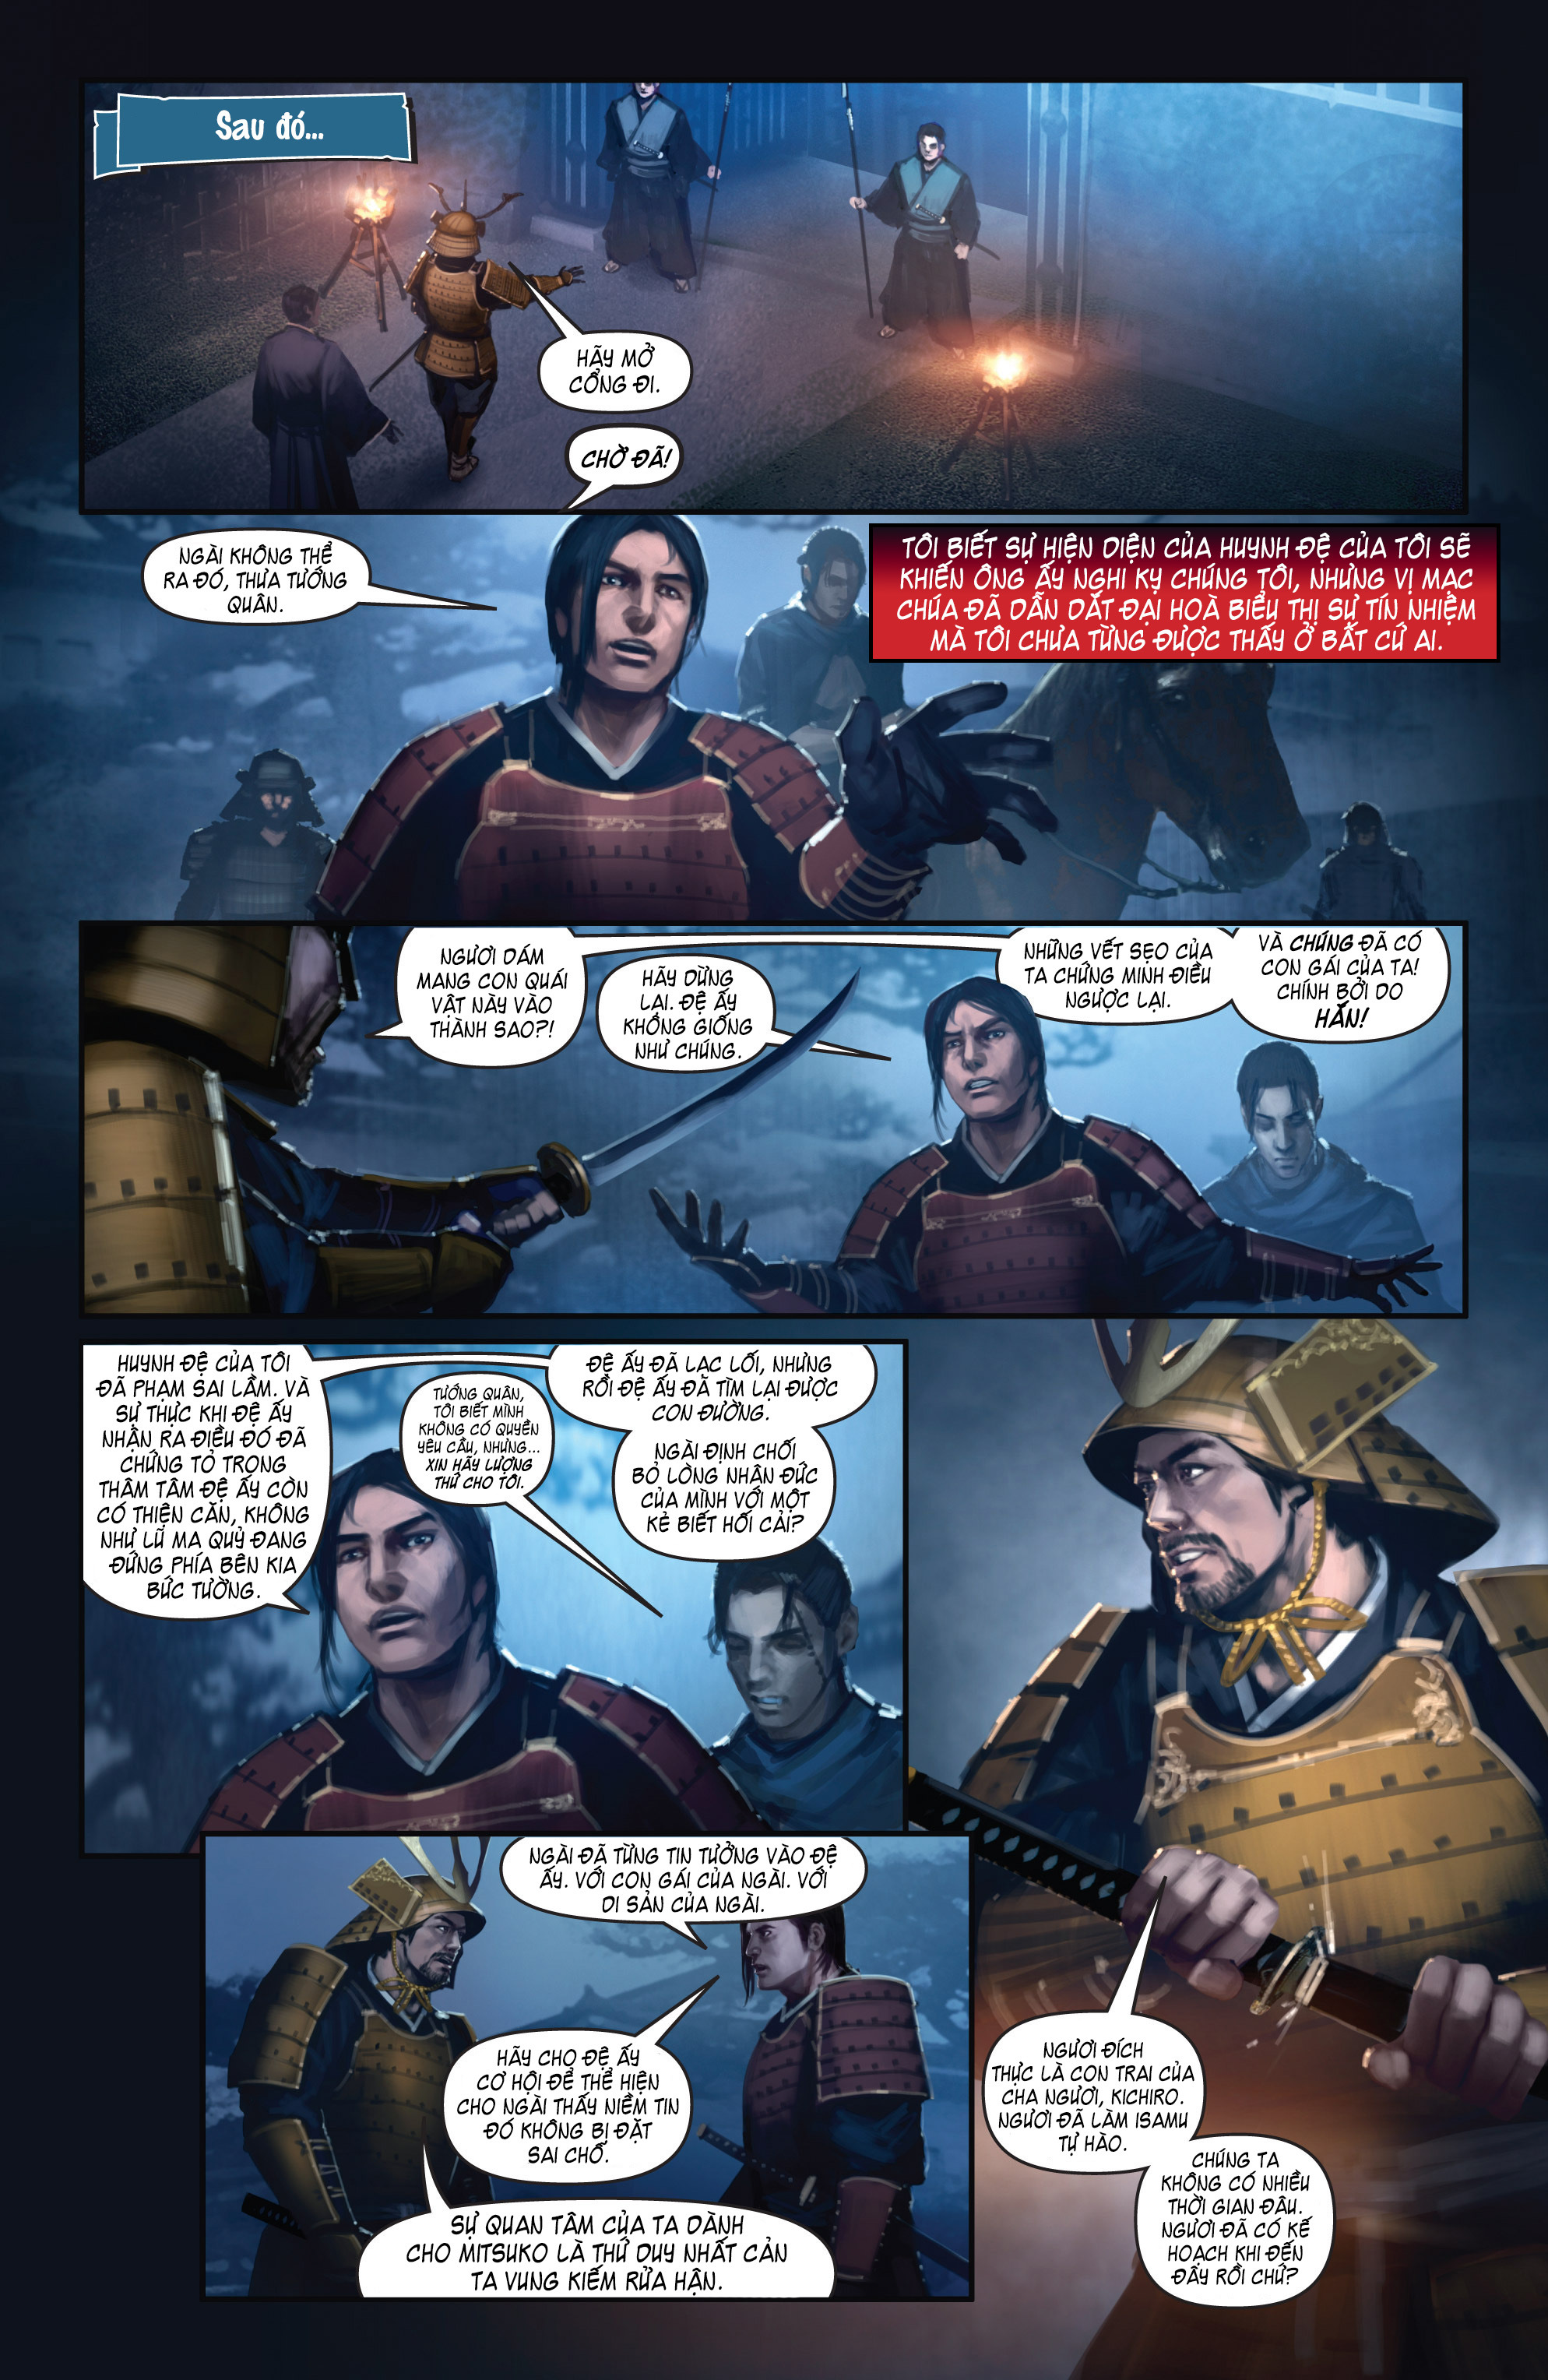 BUSHIDO - THE WAY OF THE WARRIOR chapter 5 - end trang 10